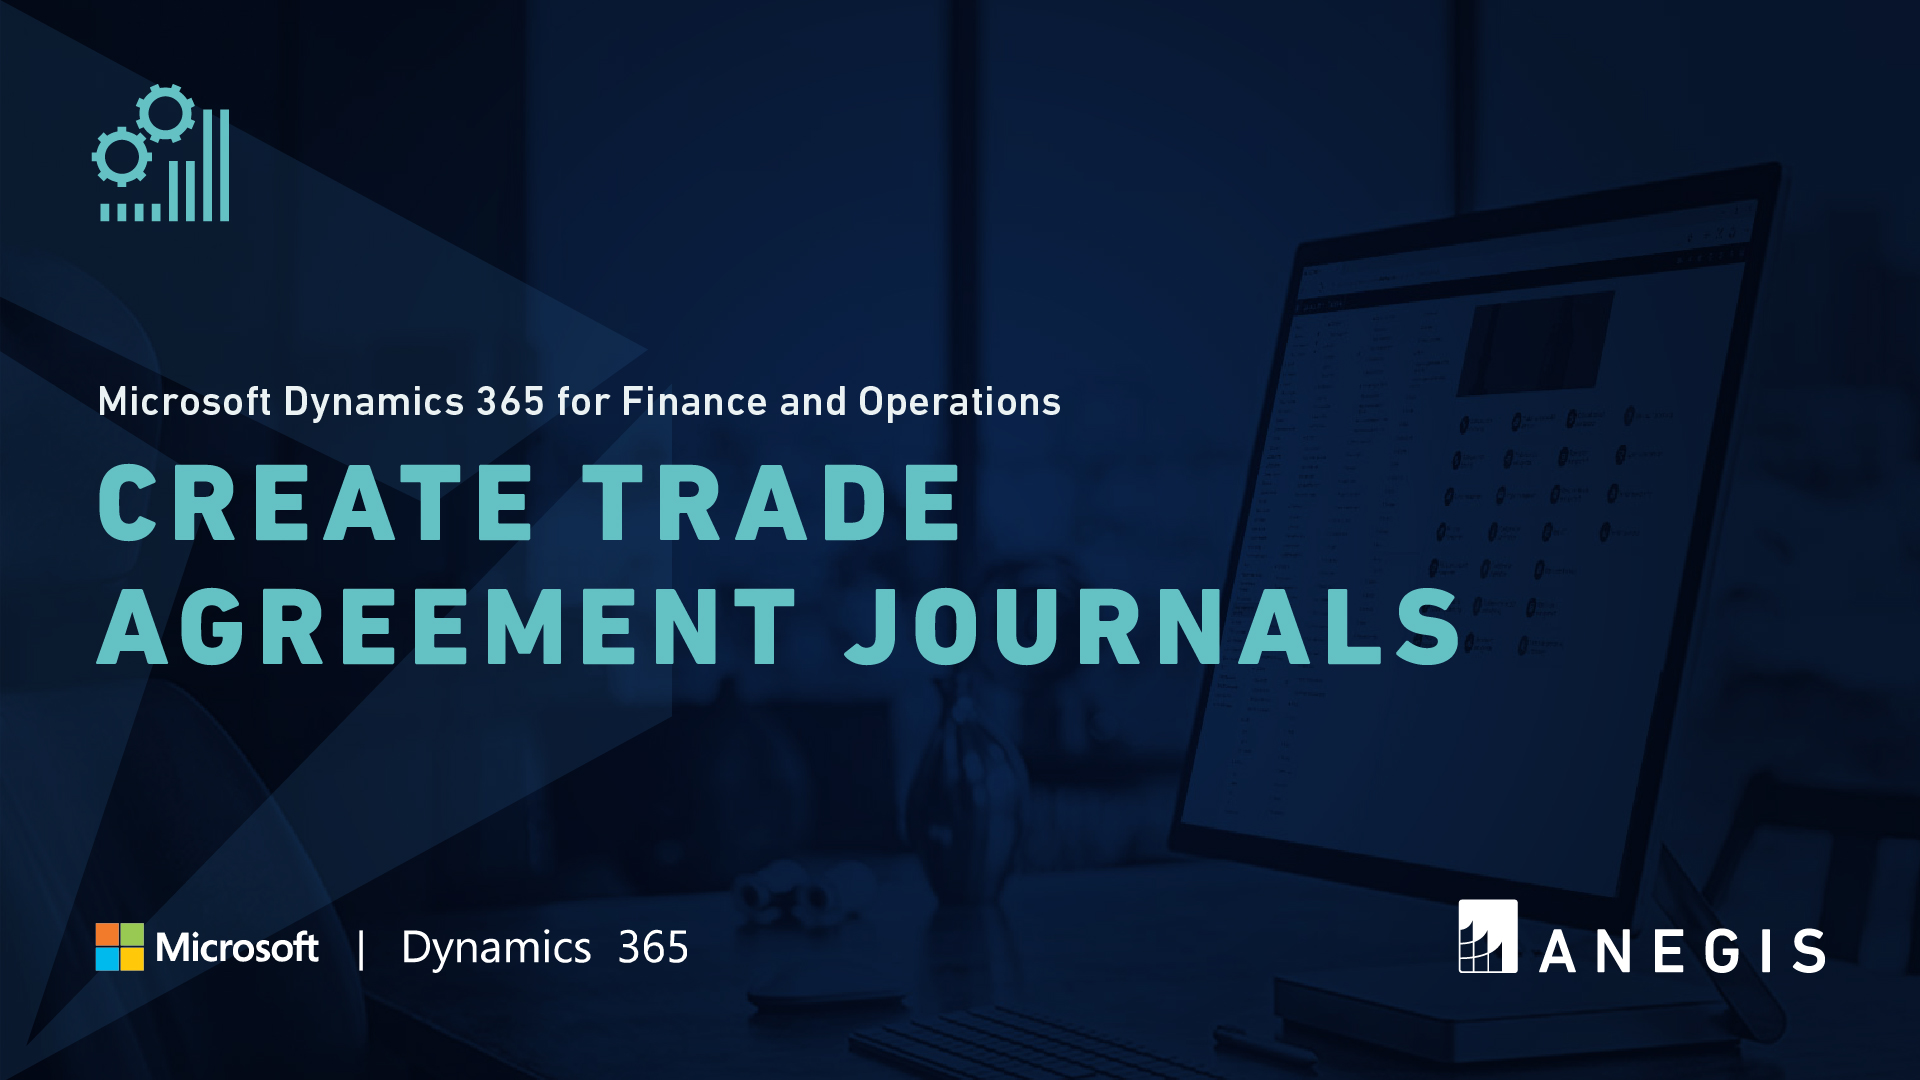 D365 F&O: Create Trade Agreement Journals